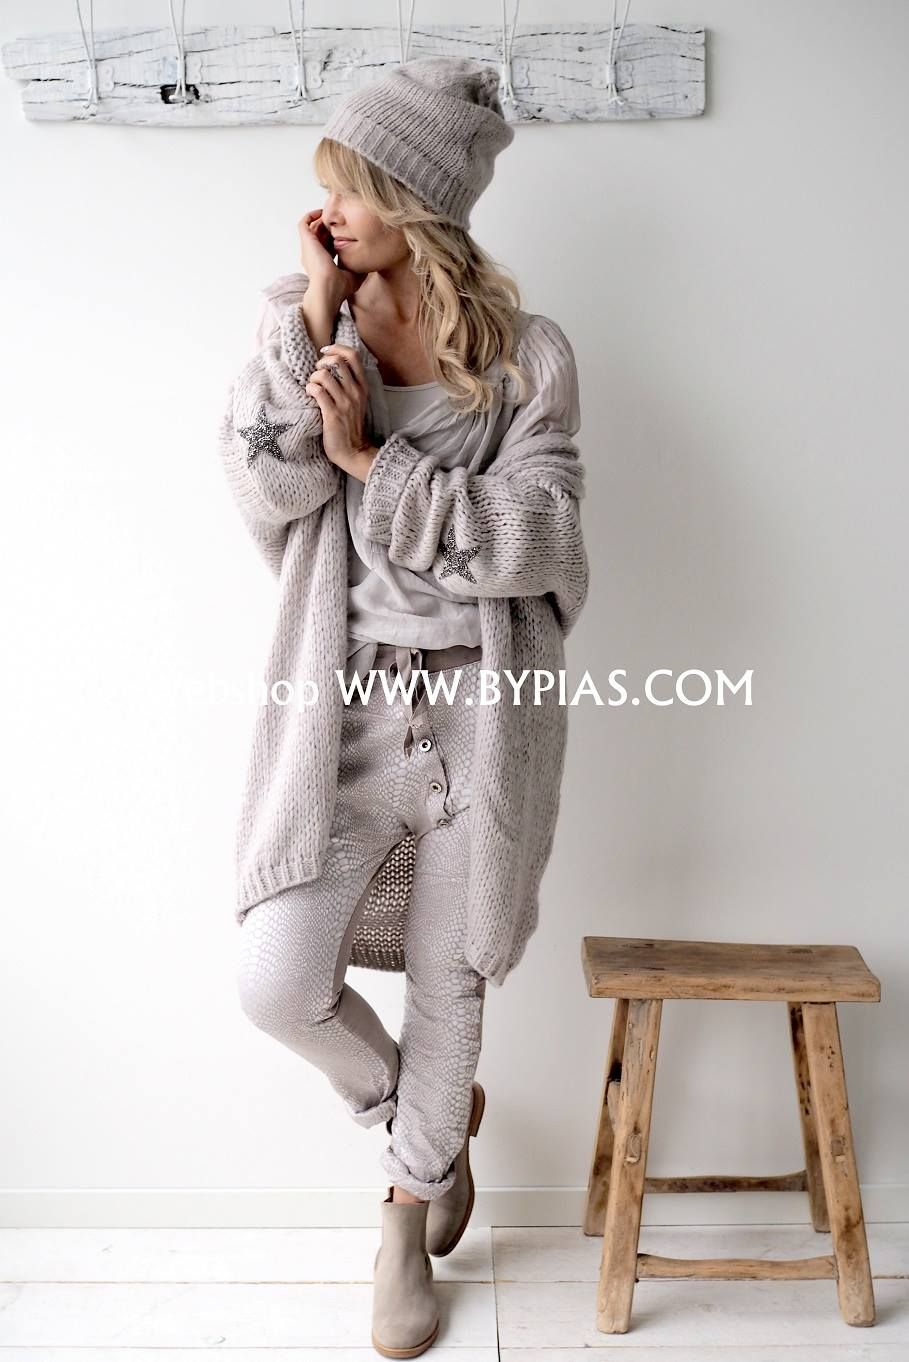 bypias knits outfits mode hivernale 50 mode und. Black Bedroom Furniture Sets. Home Design Ideas